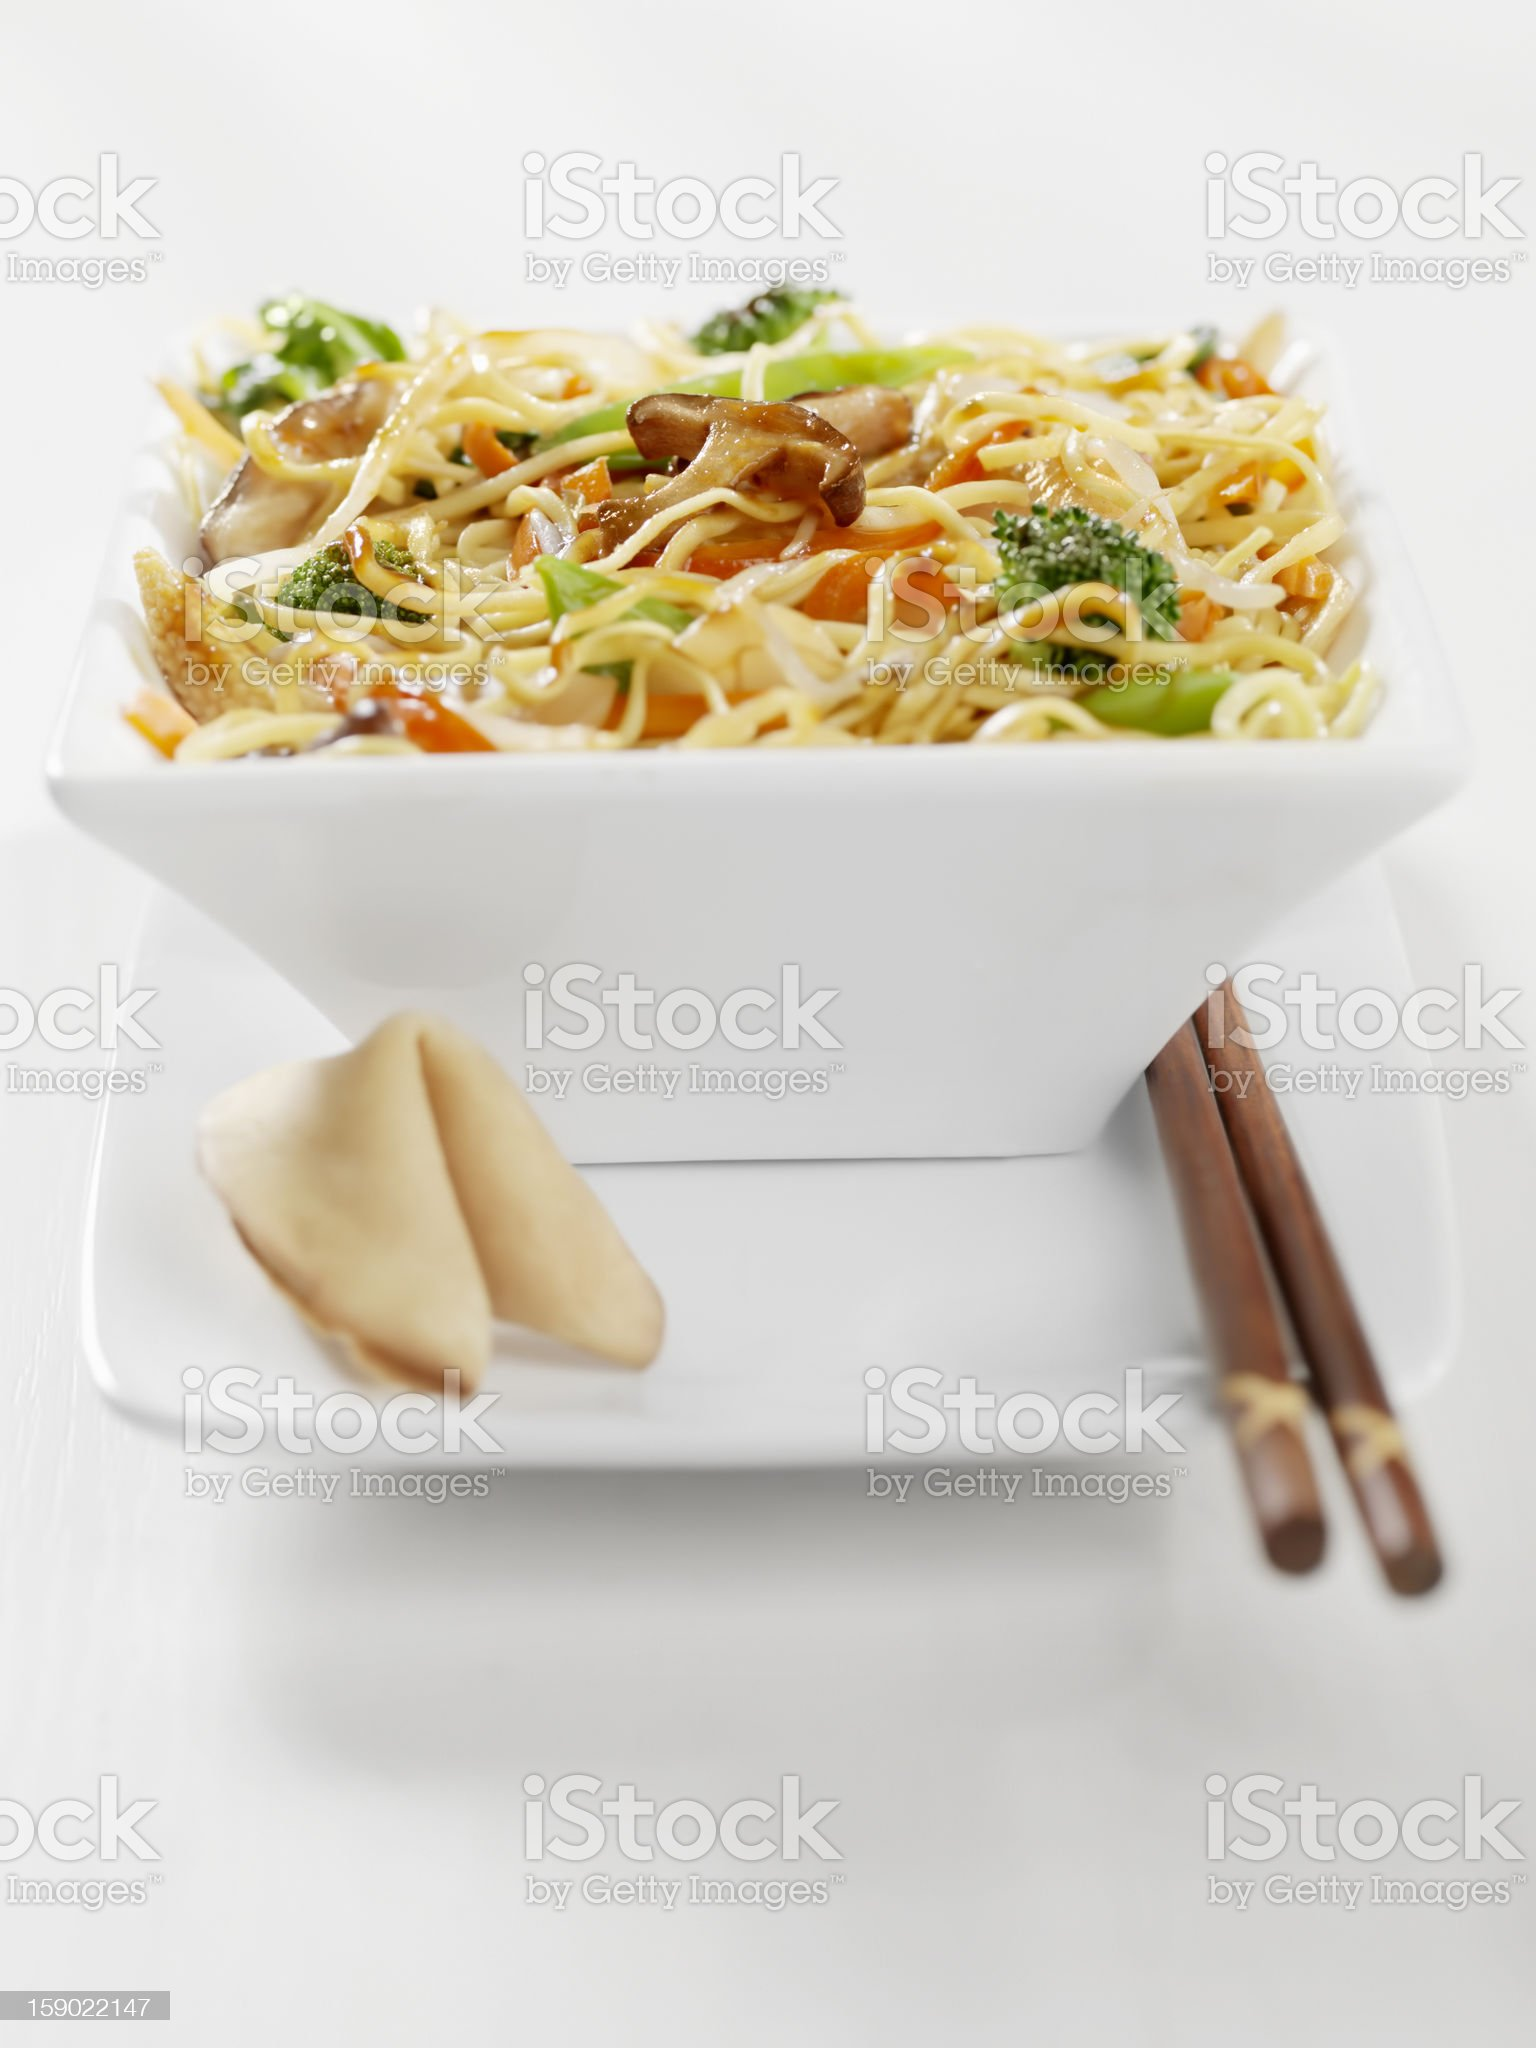 Vegetarian Stirfry with Noodles royalty-free stock photo